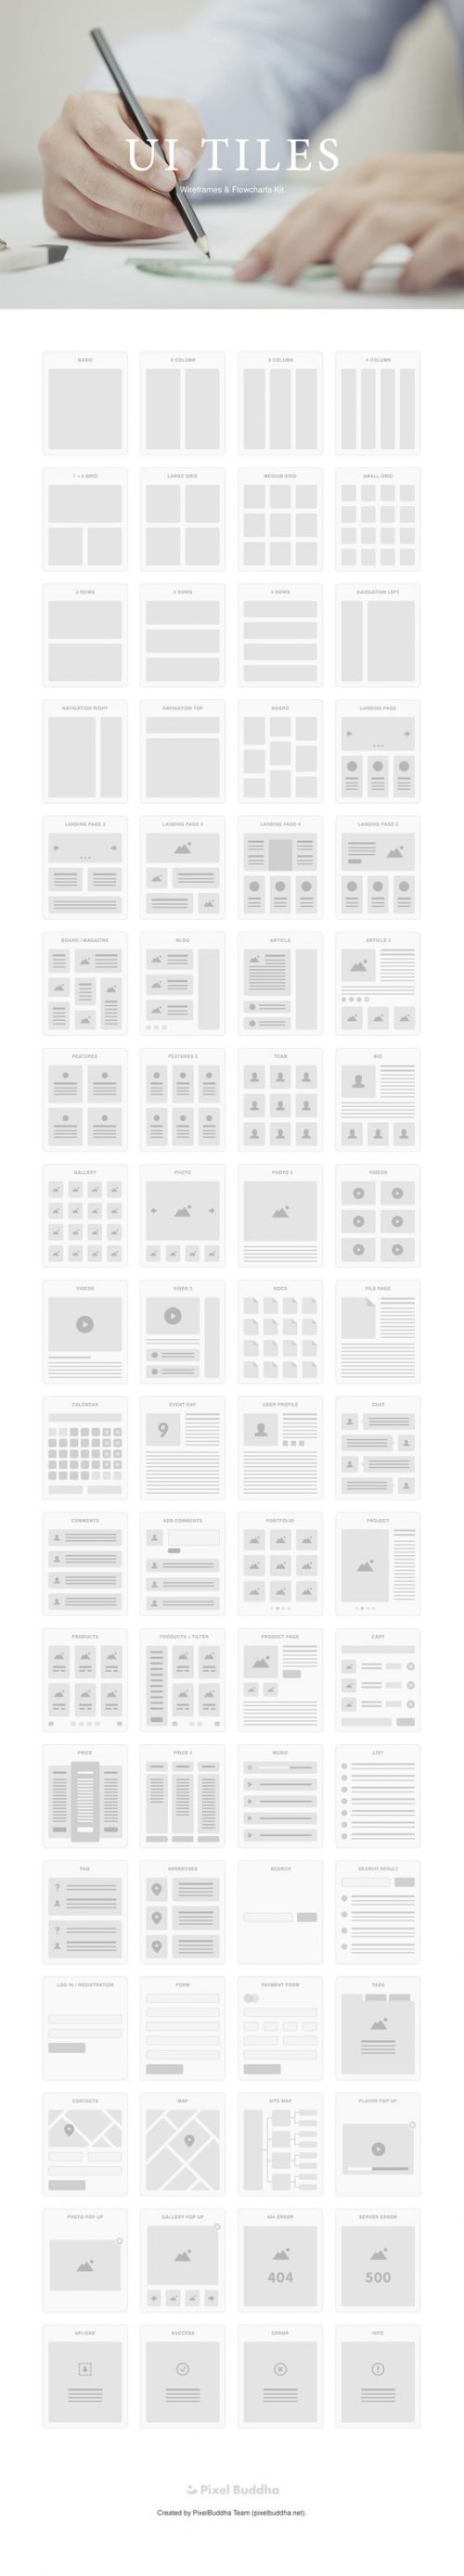 UI Tiles Wireframes and Flowcharts